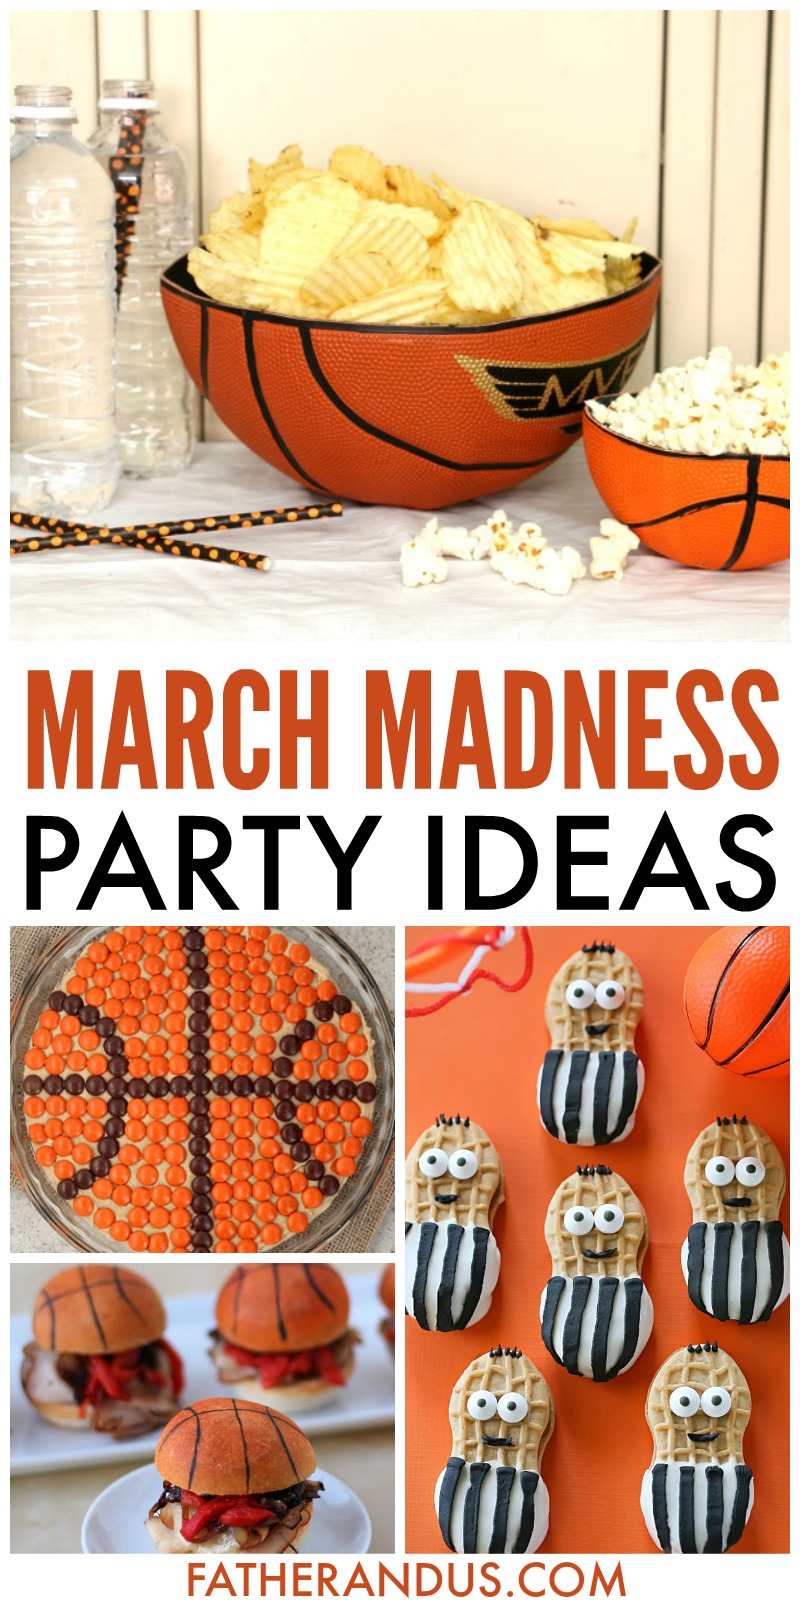 March Madness Party Ideas